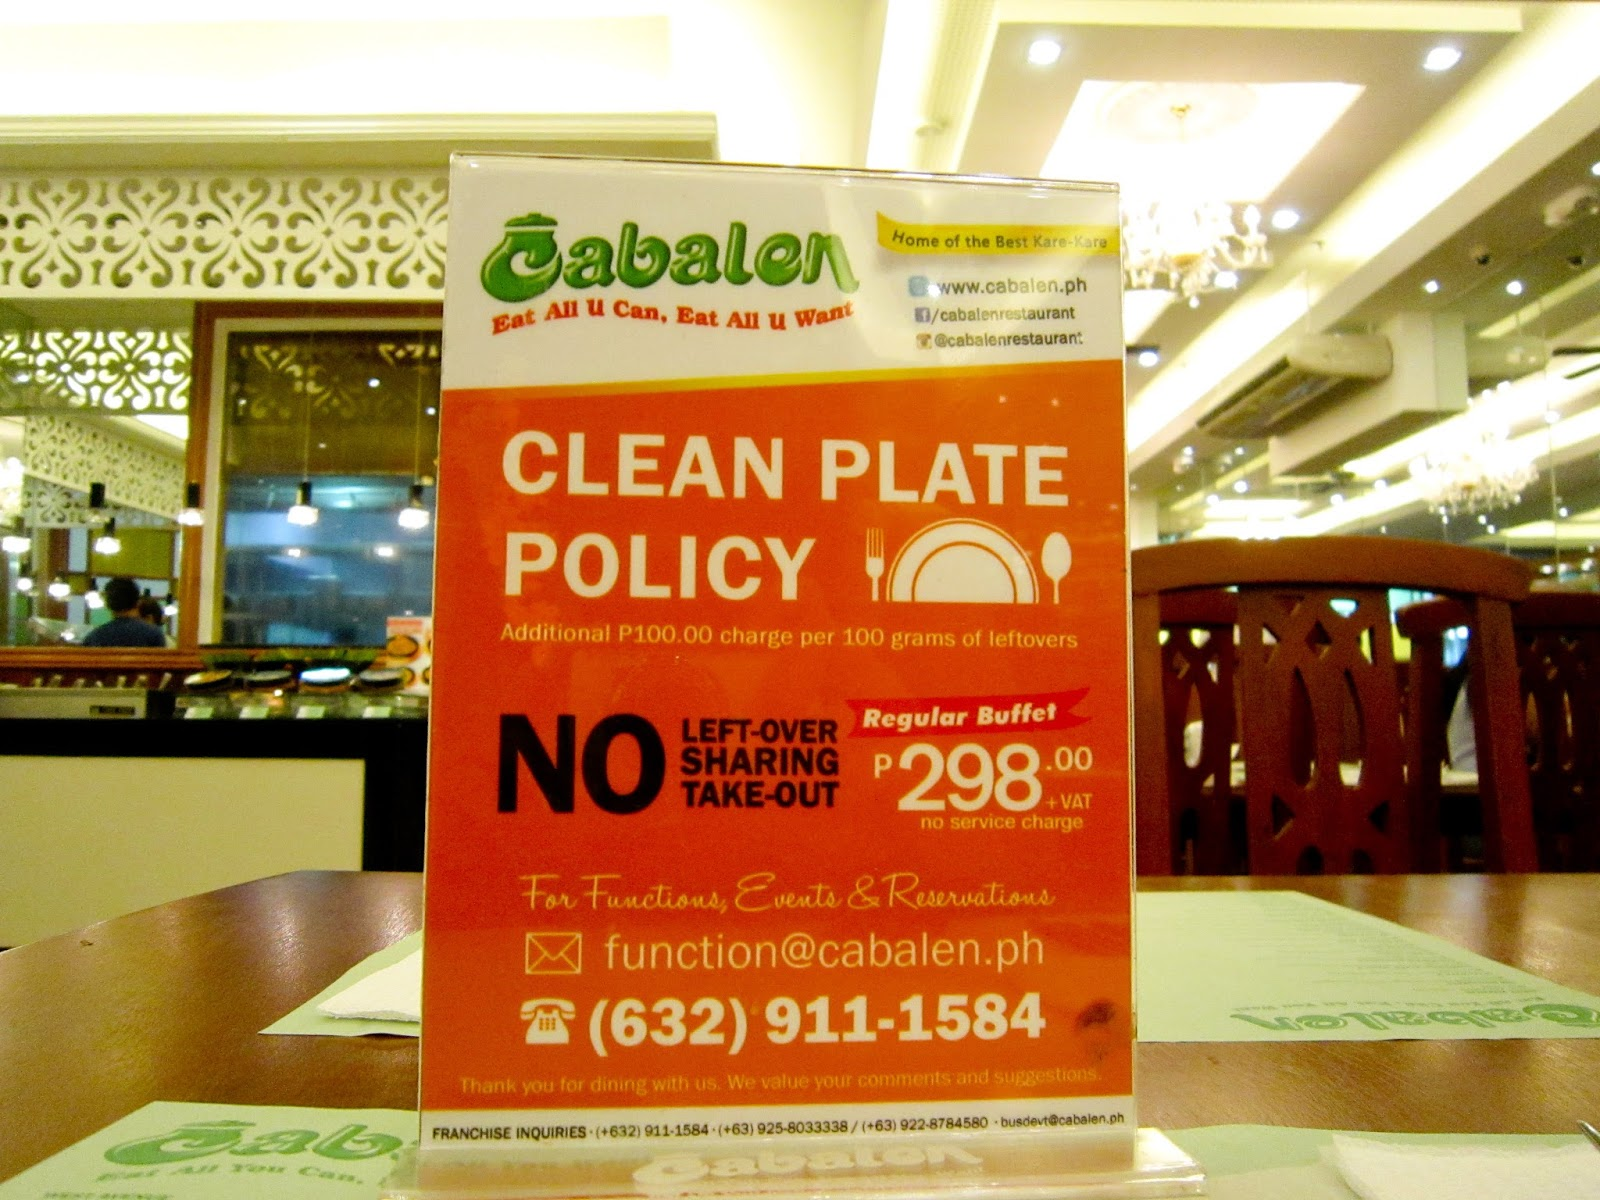 When We Were Seated This Table Display Caught My Attention Cabalen Is Strict With Their Leftovers They Have Clean Plate Policy